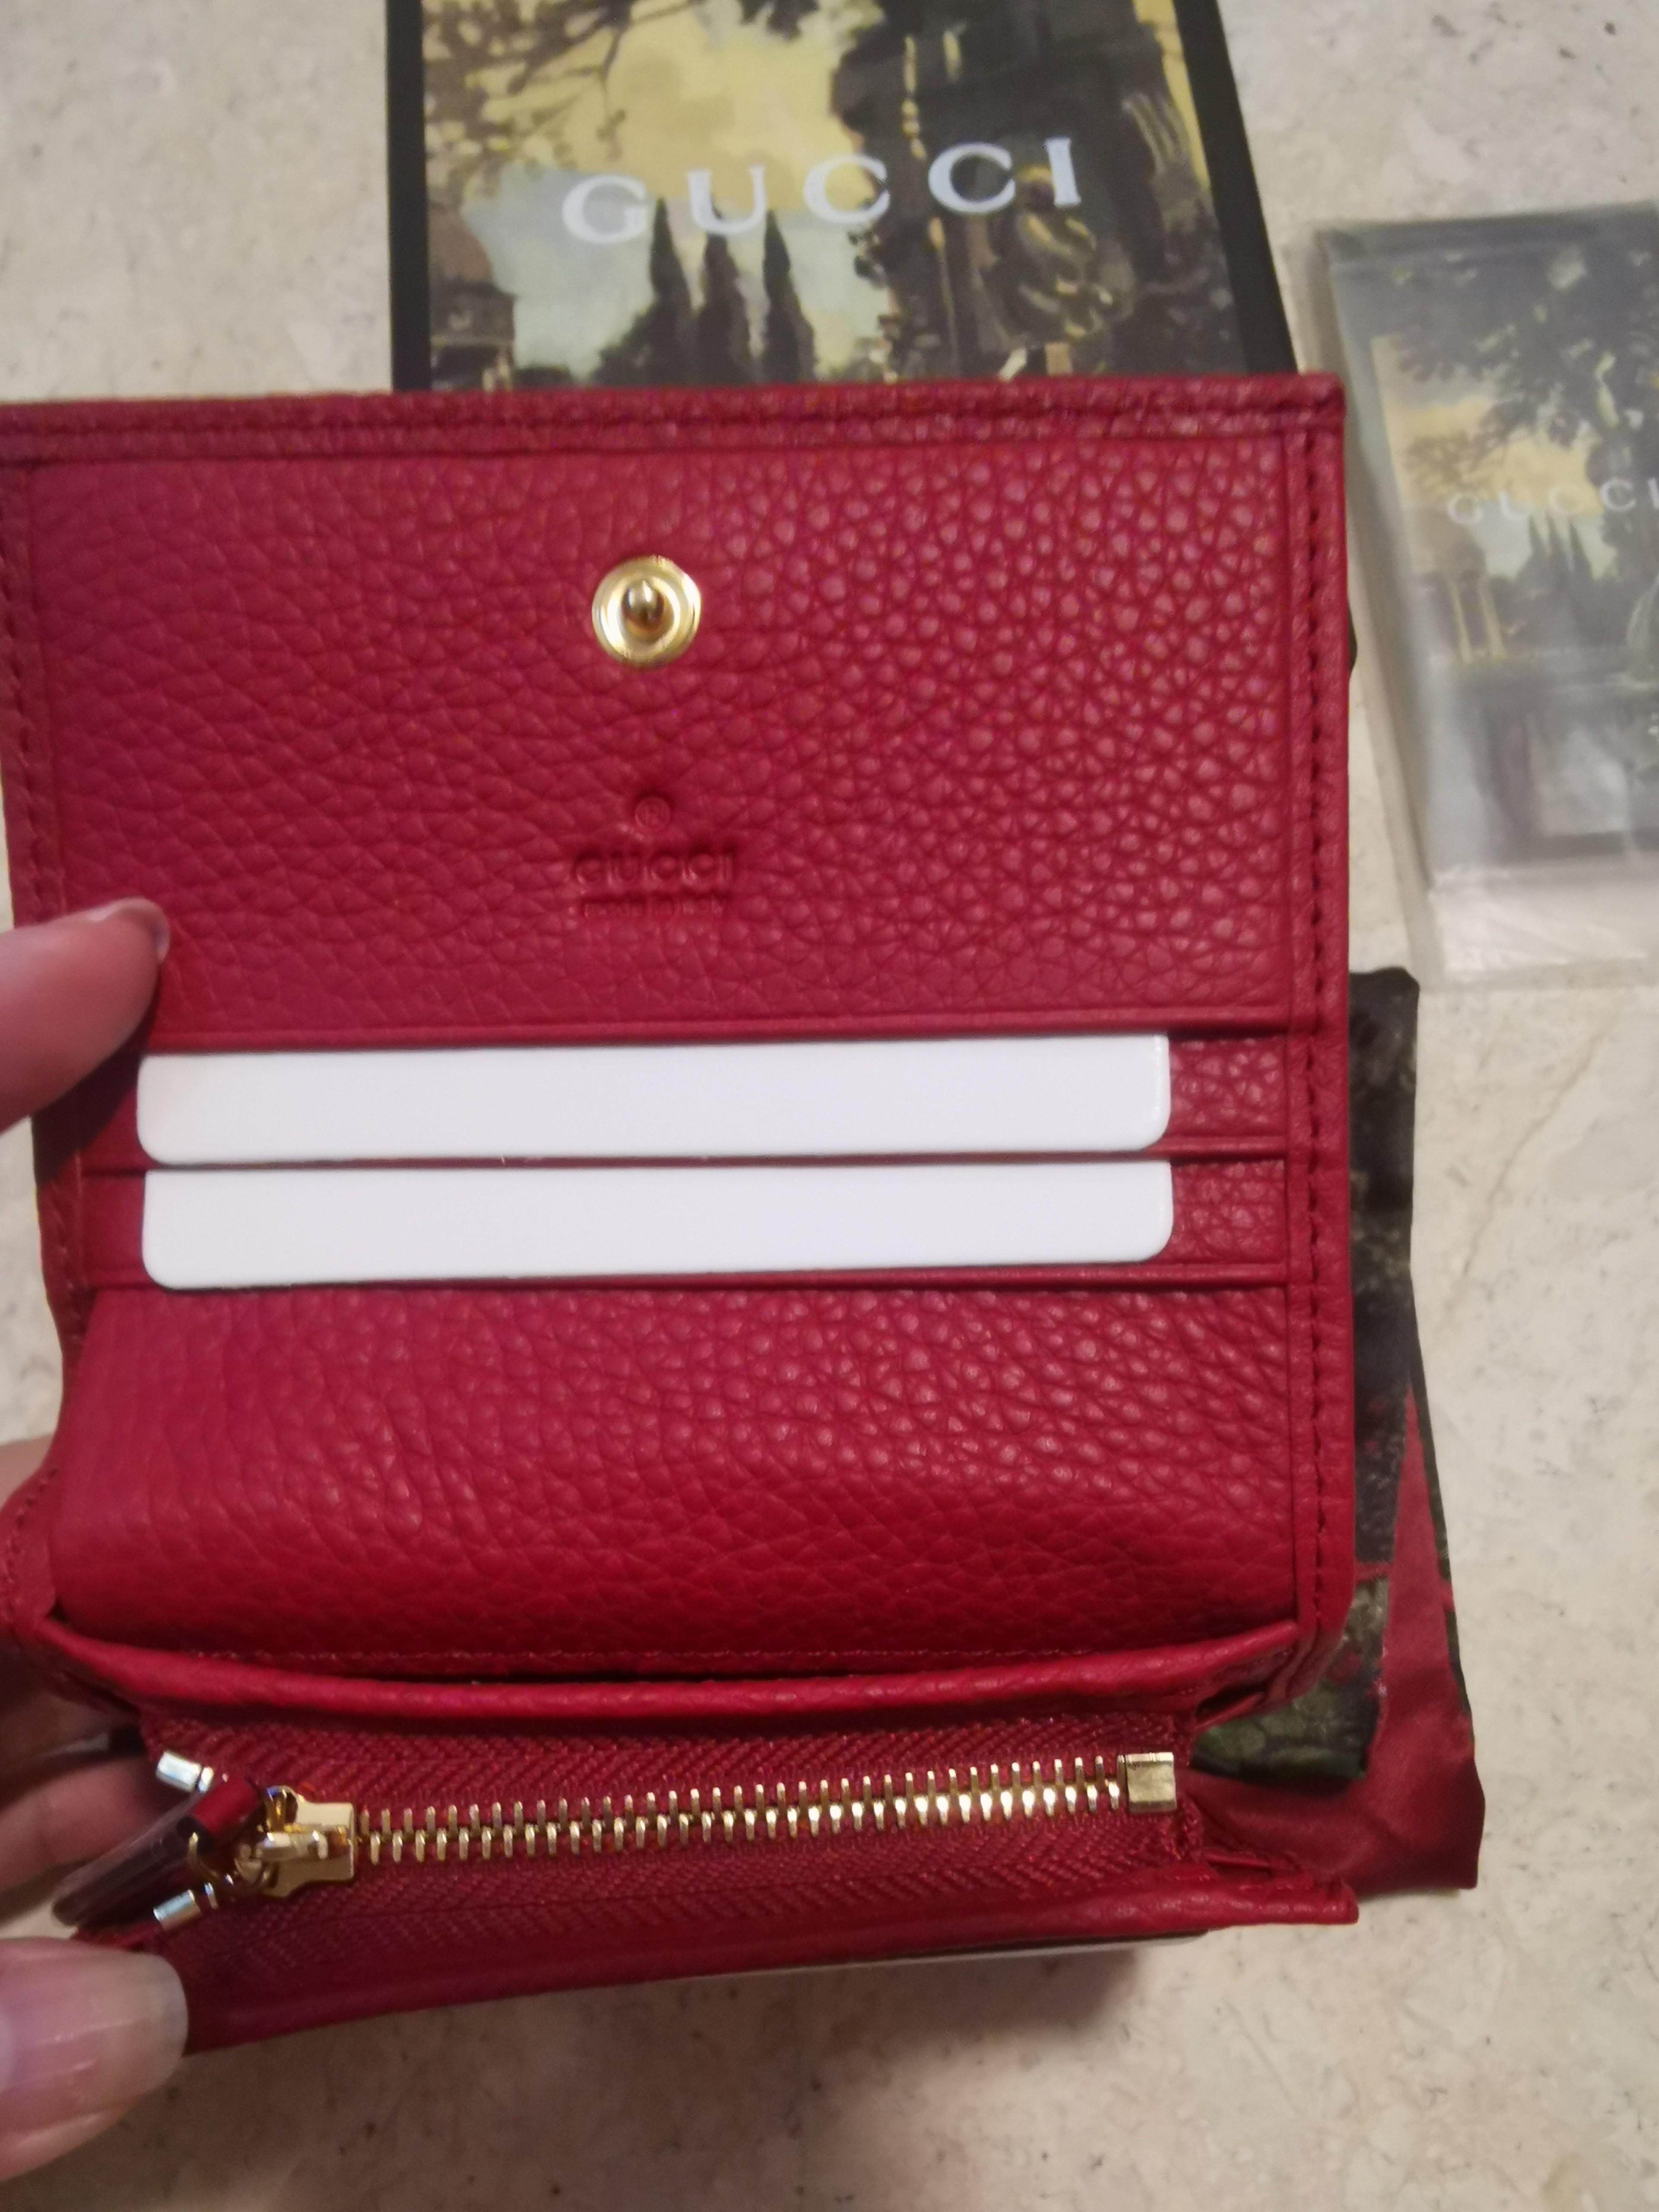 Gucci Marmont GG Short Wallet